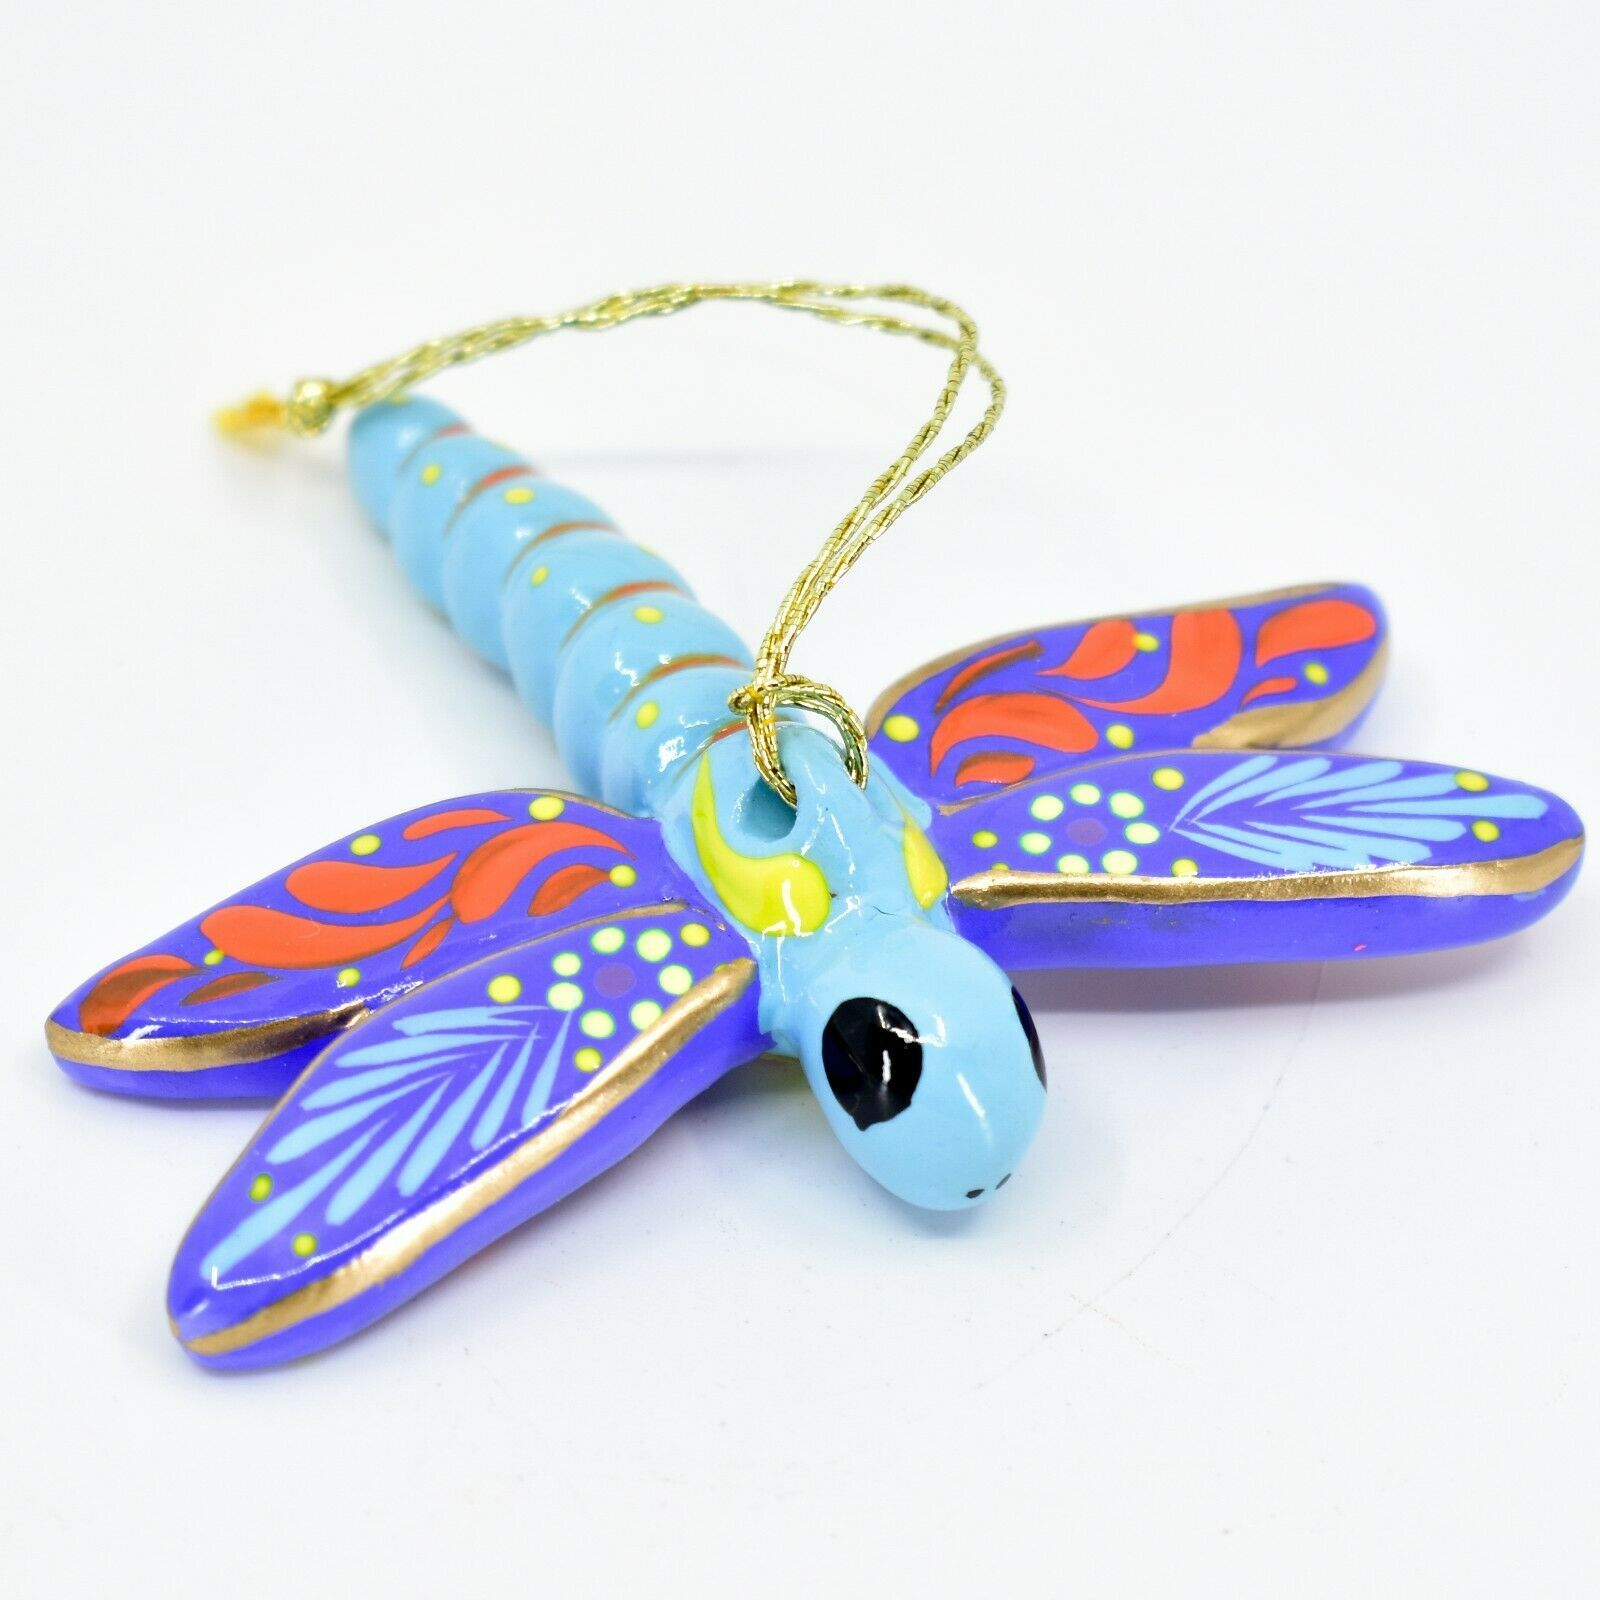 Handcrafted Painted Ceramic Dragonfly Confetti Ornament Made in Peru